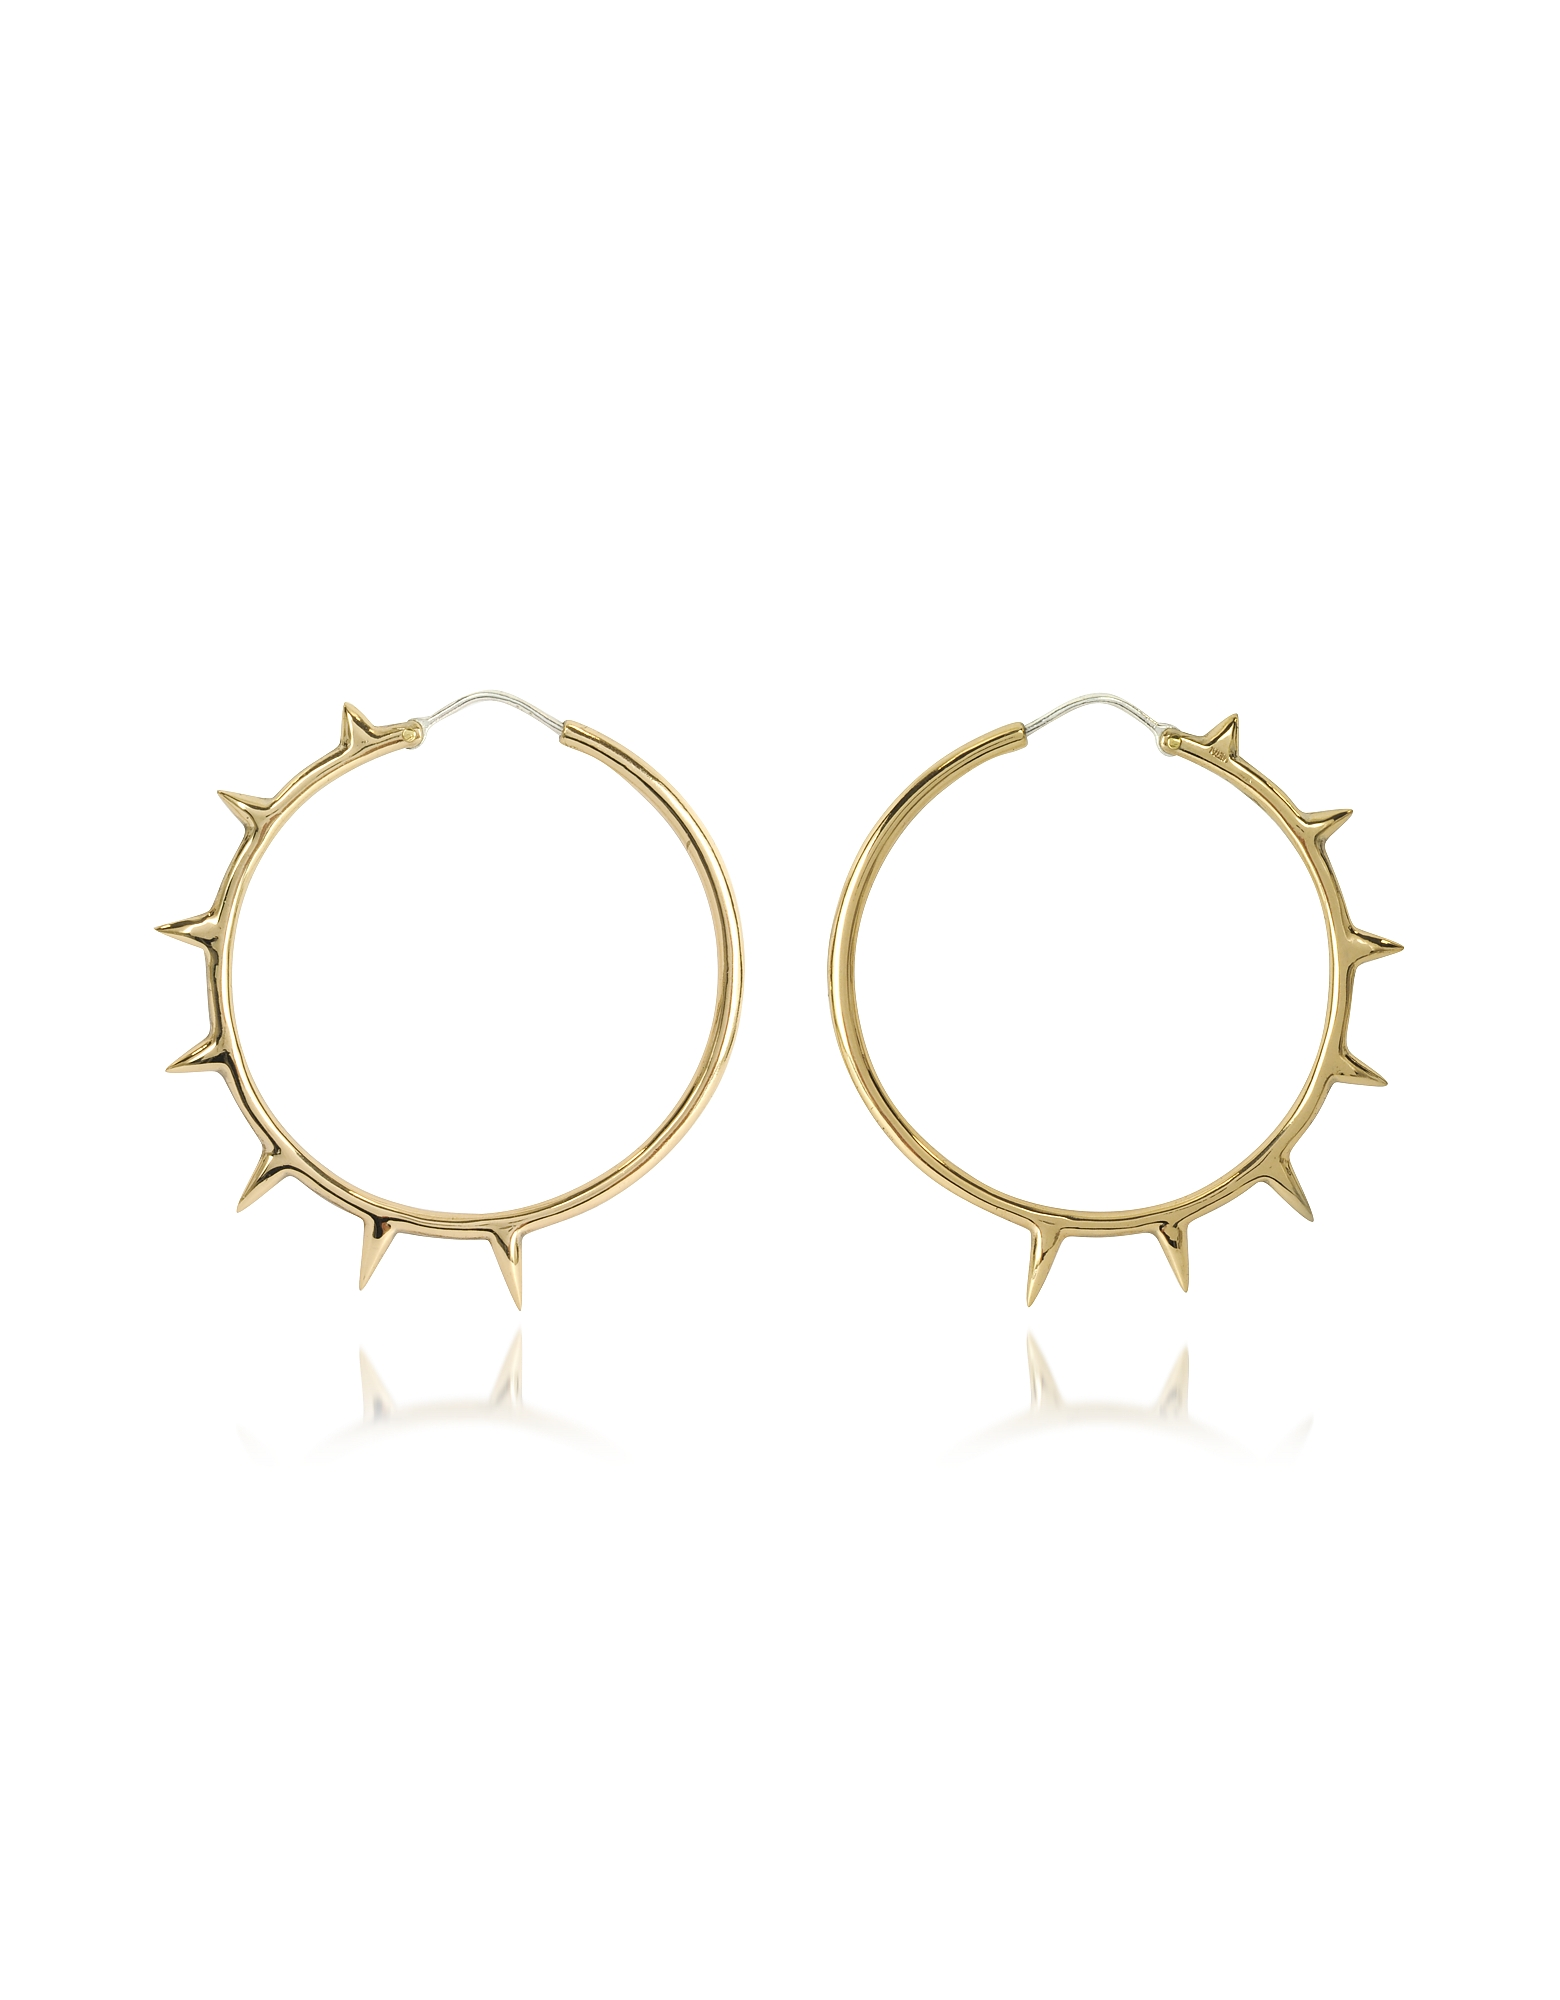 Bernard Delettrez Earrings, Bronze Hoop Earrings w/Spikes